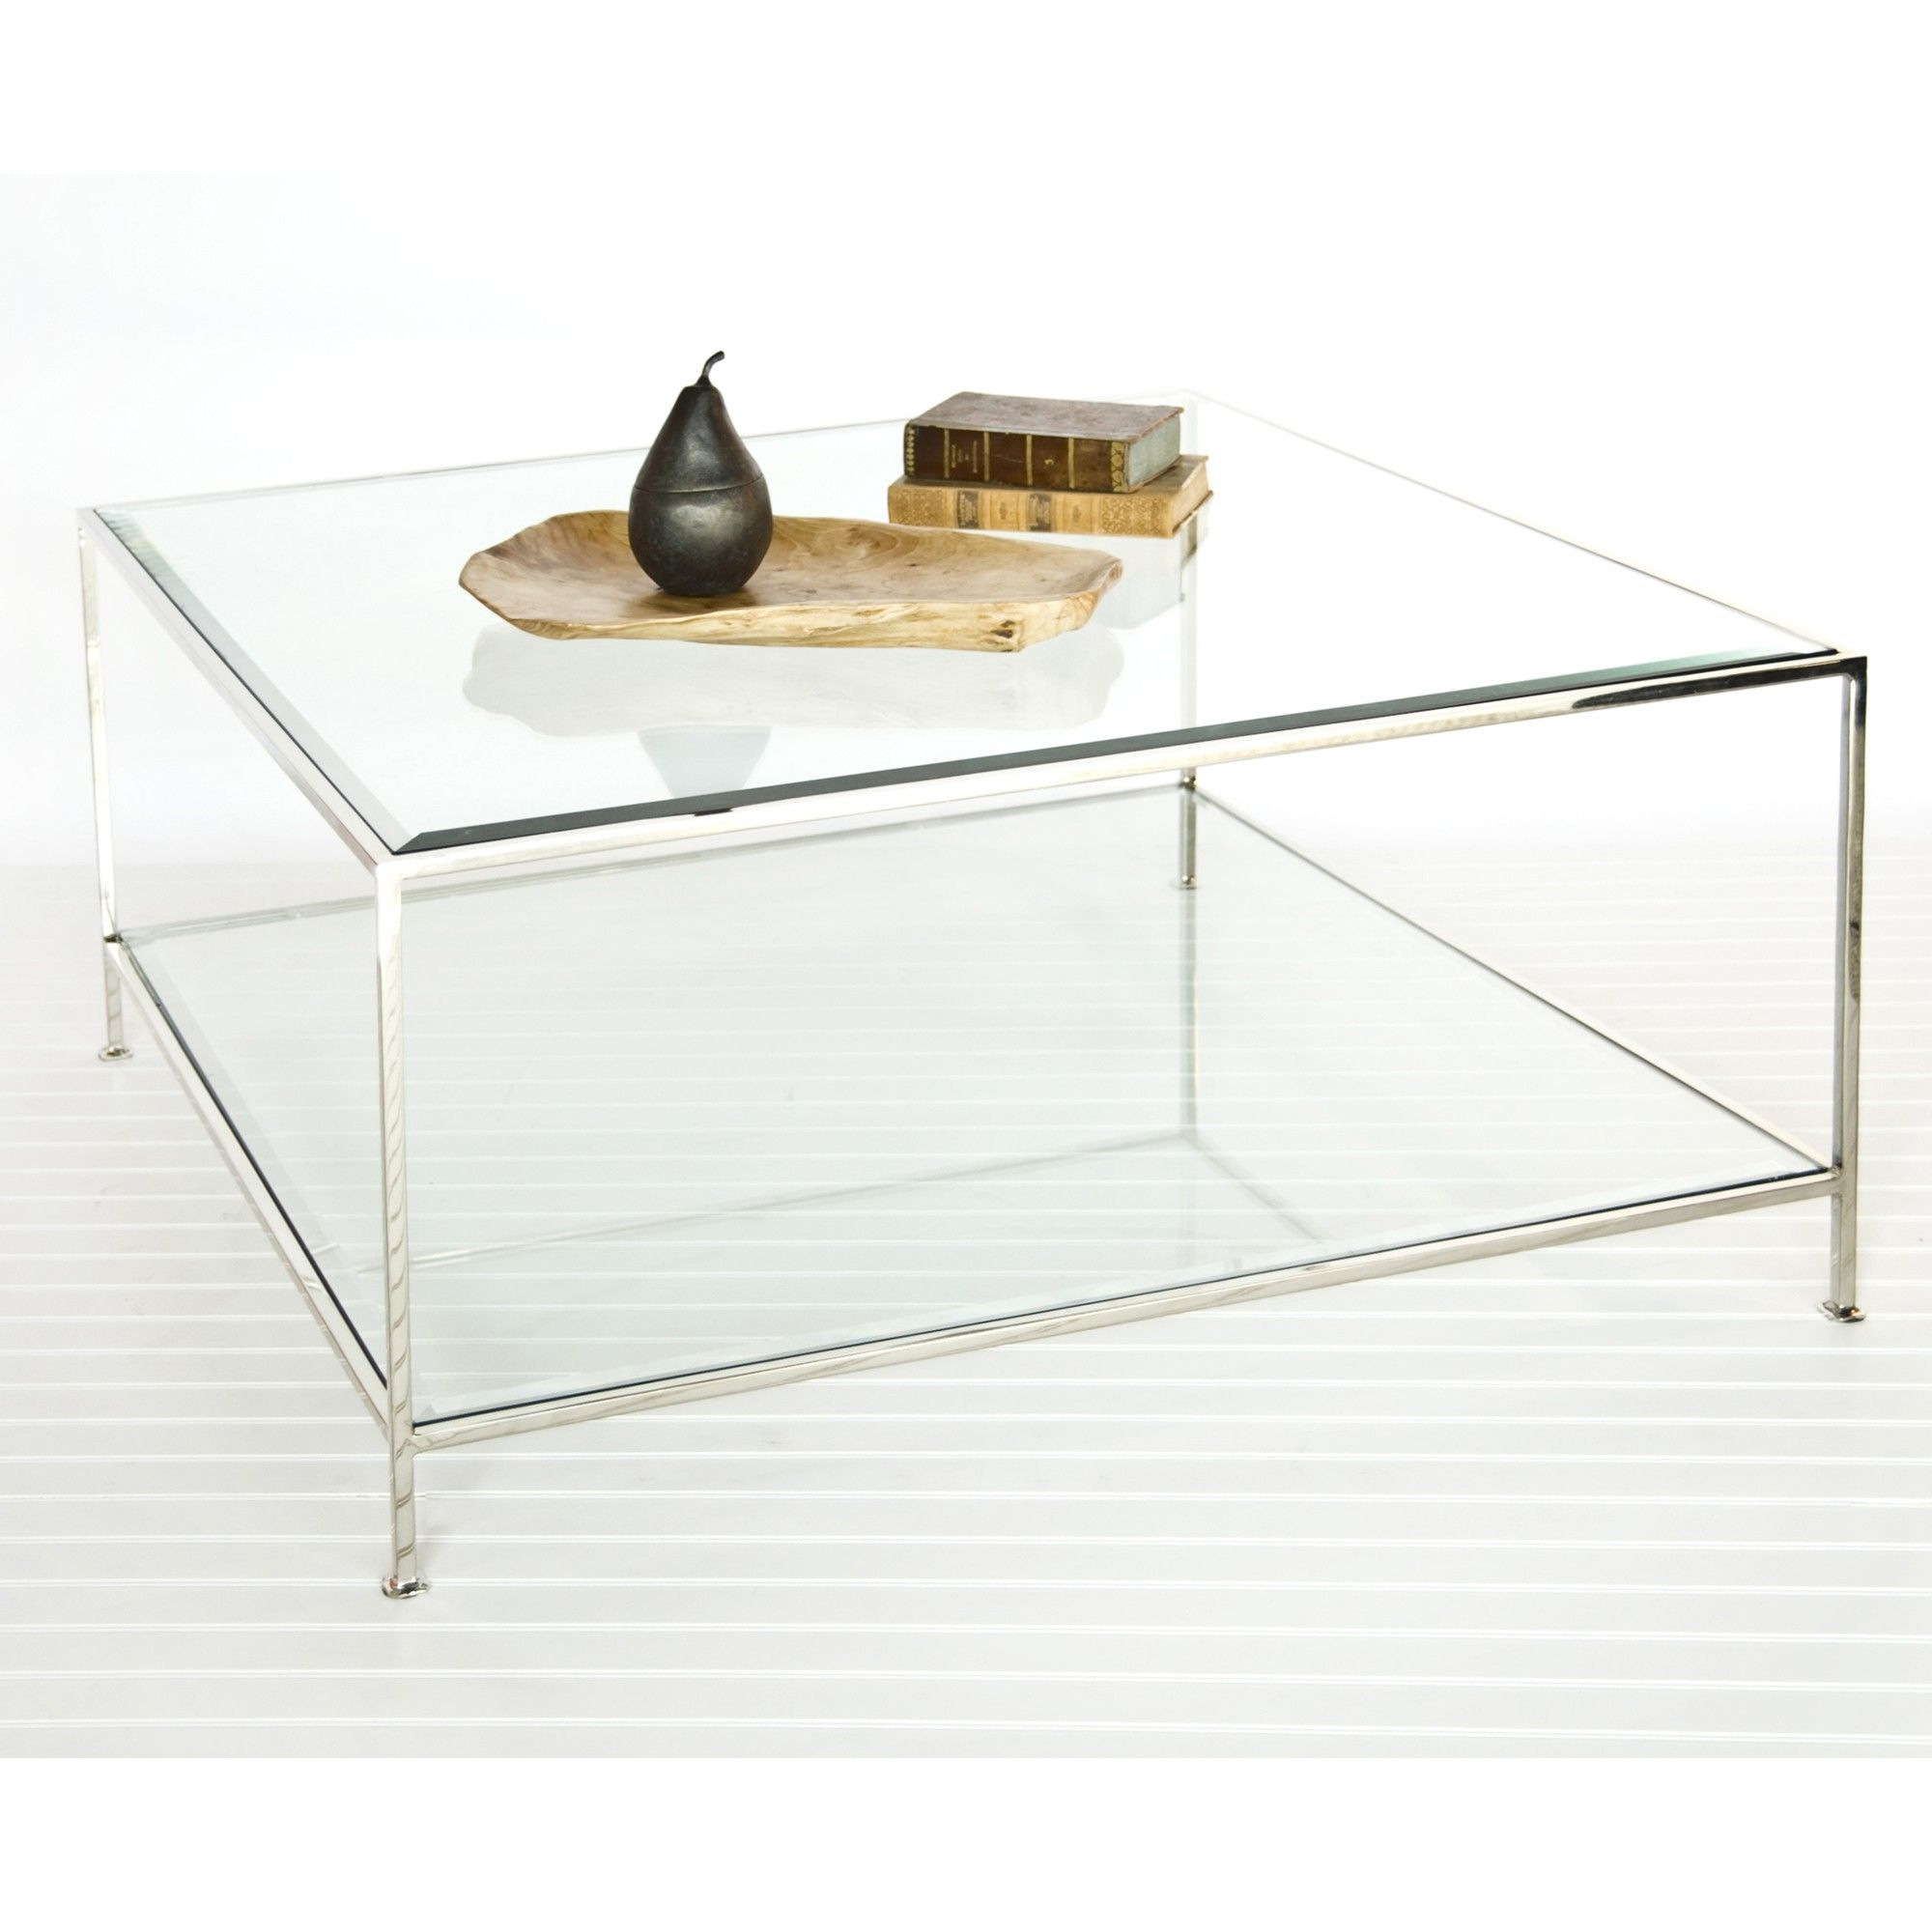 Square Coffee Table with Beveled Glass in Sleek Nickel by Worlds